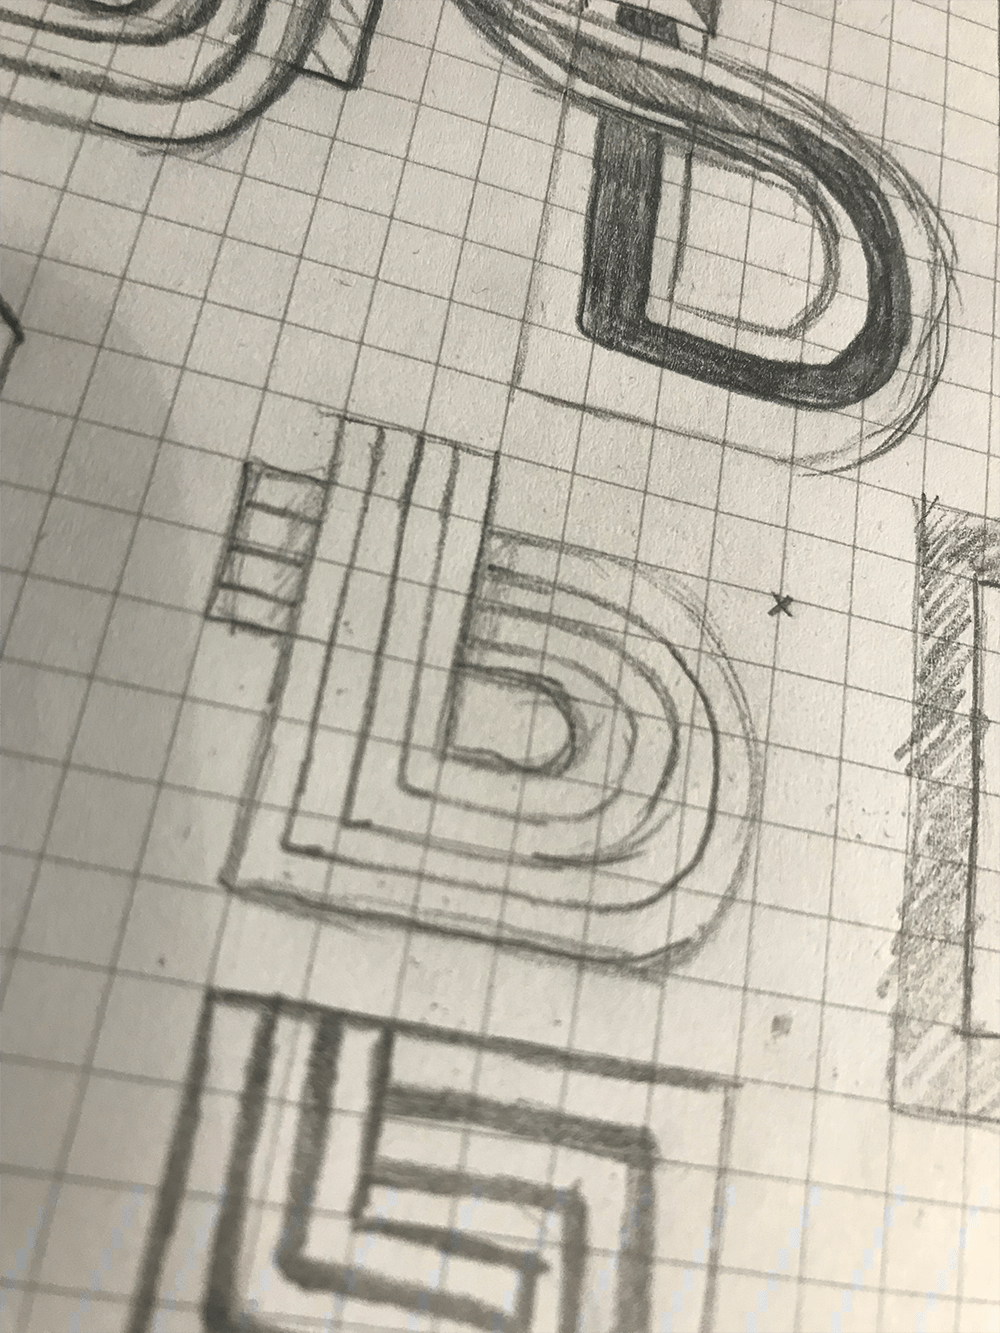 LD Combined Initials - image 2 - student project